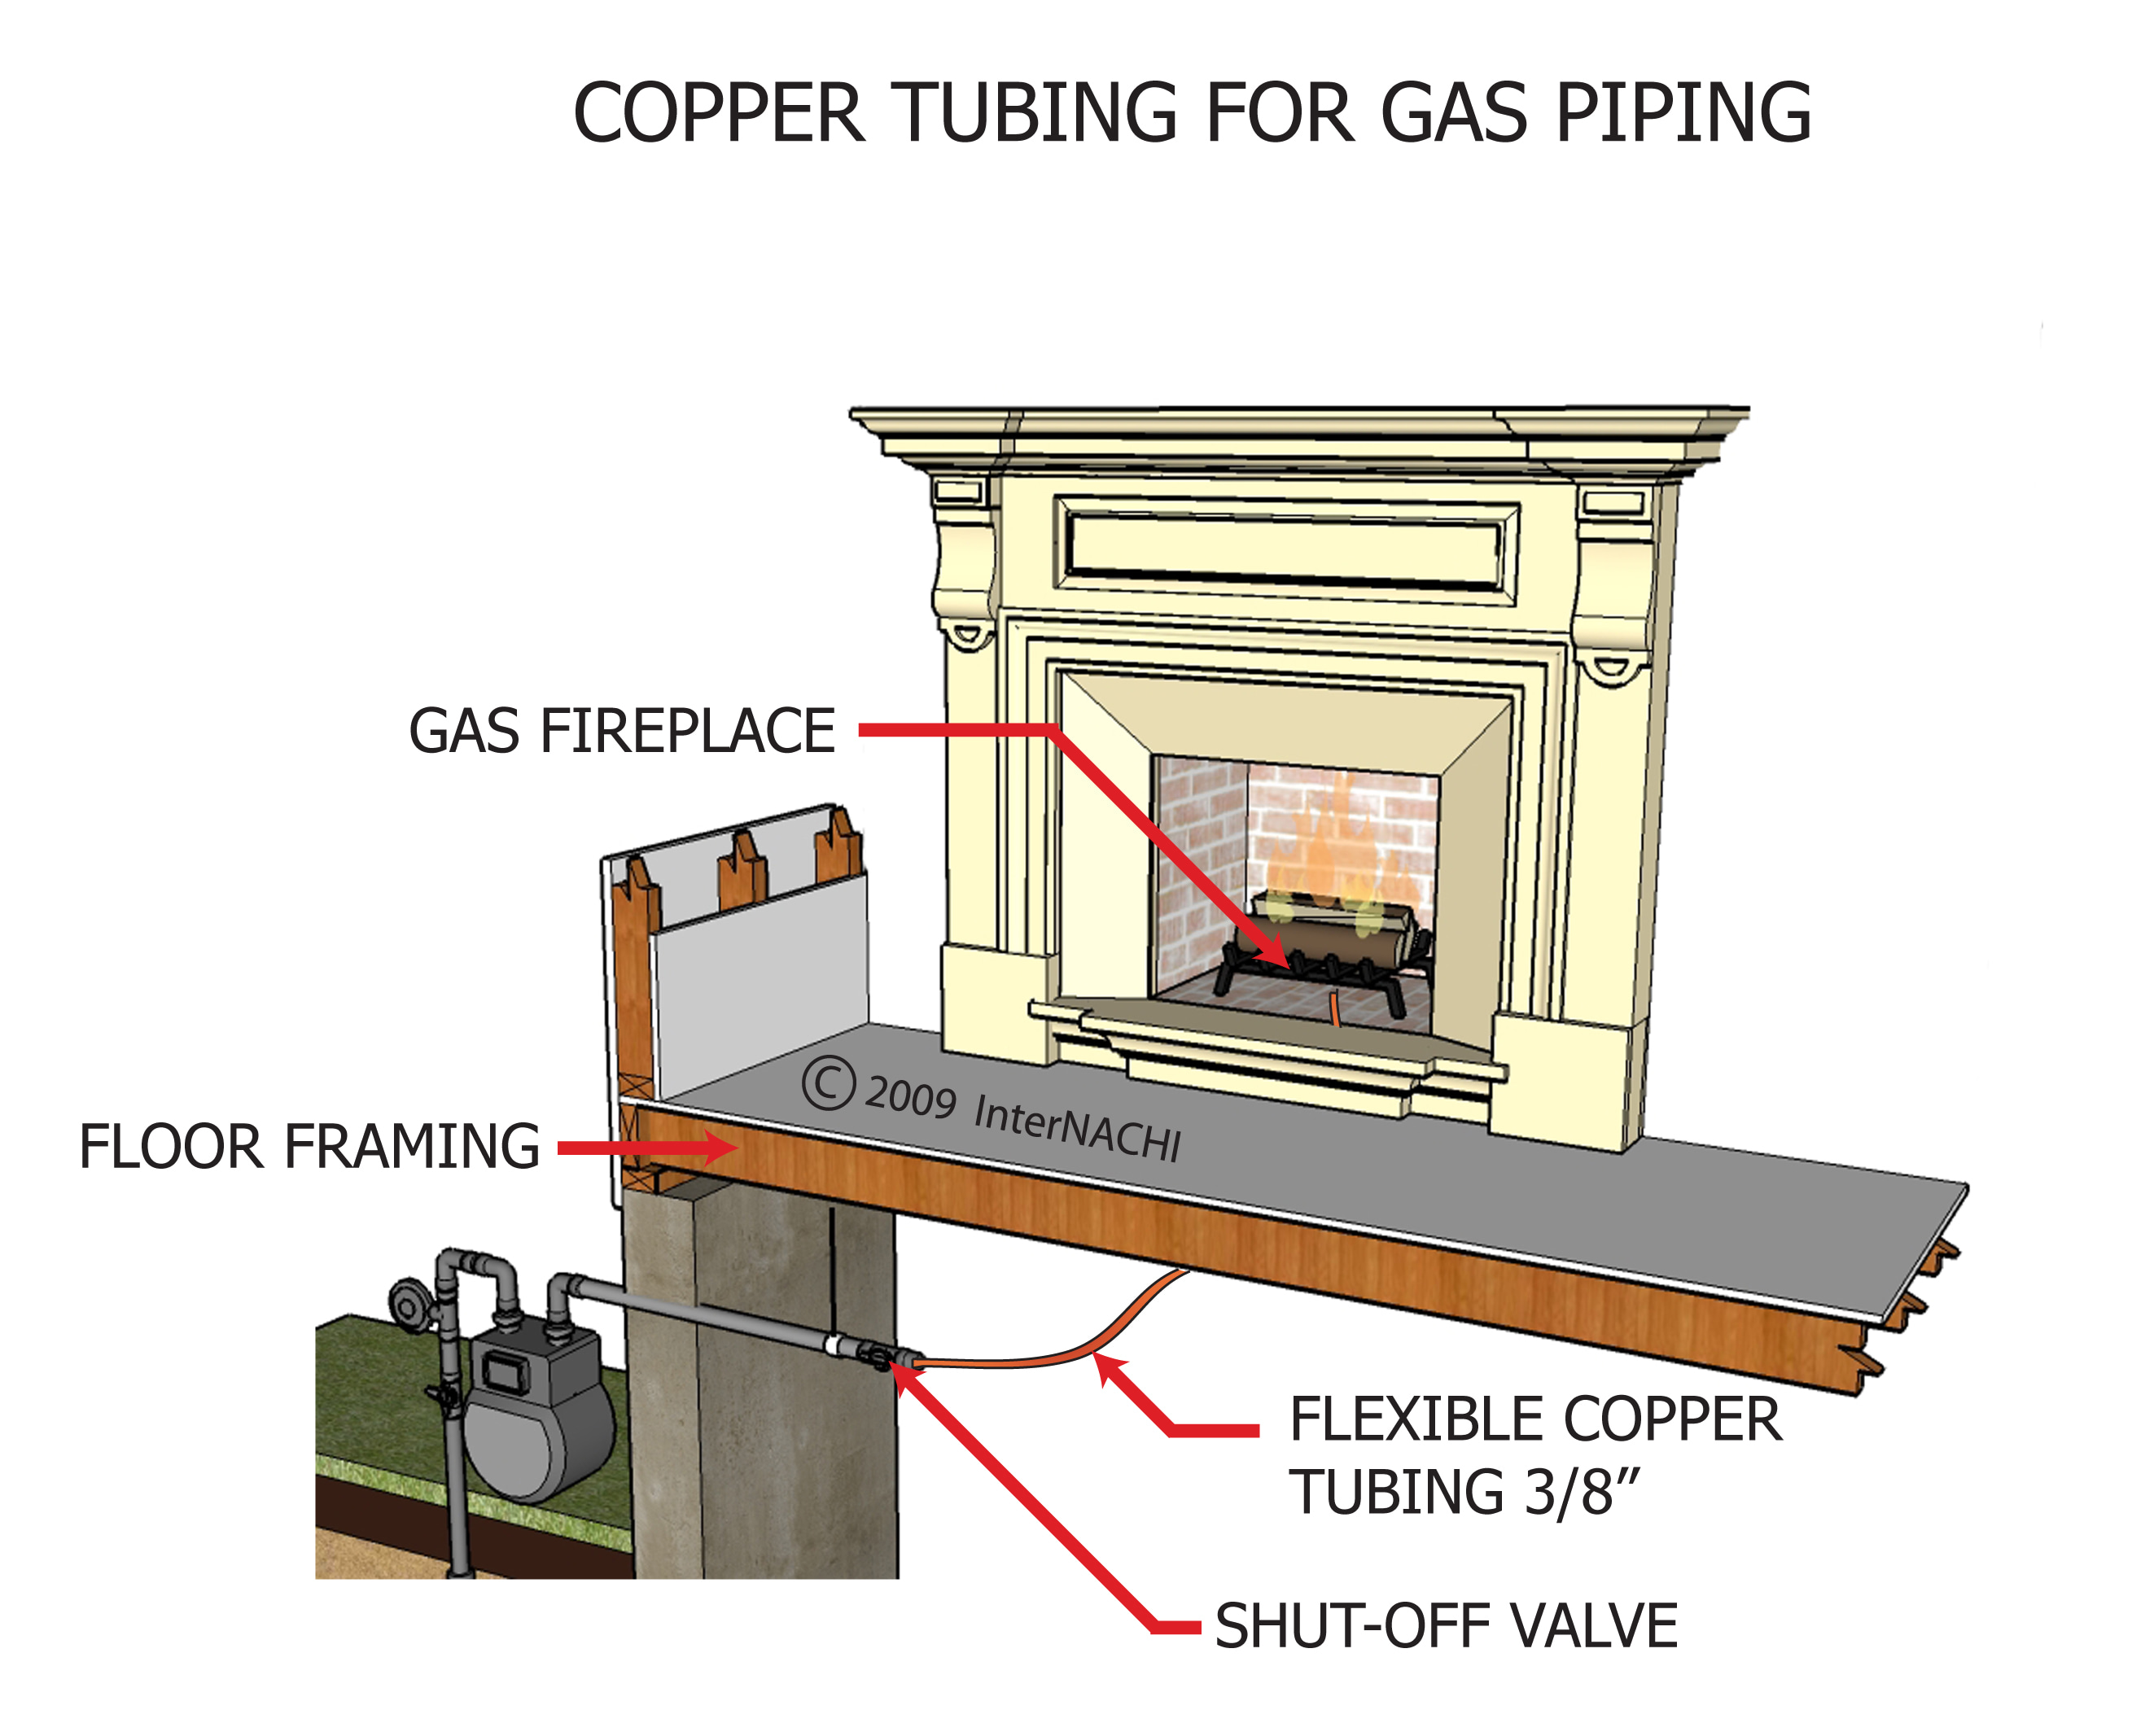 Copper tubing for gas piping.